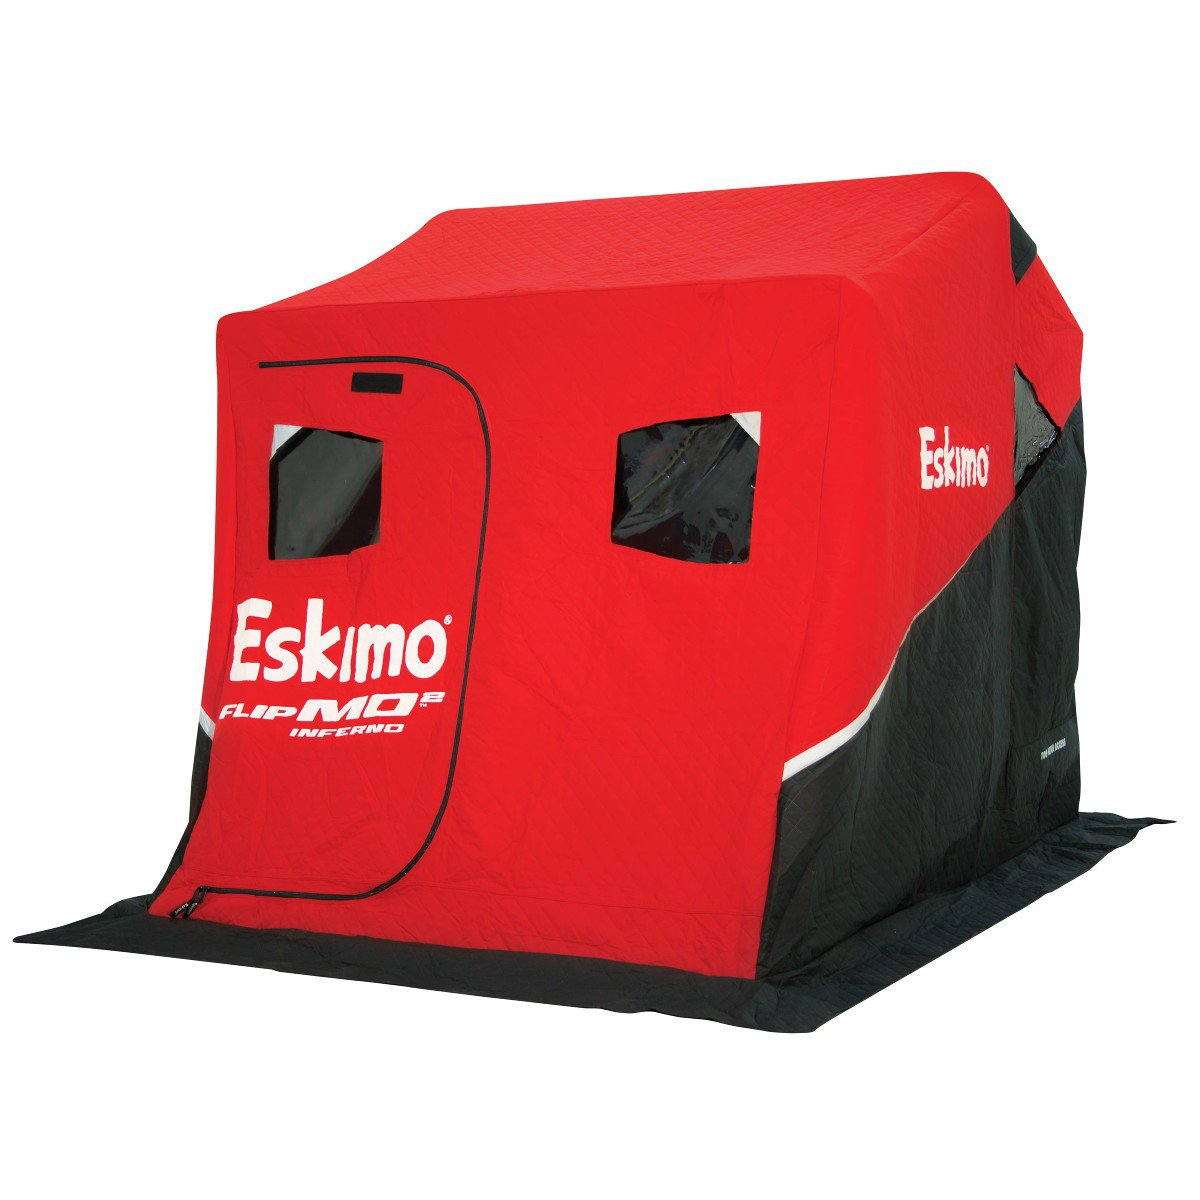 Eskimo flipmo 2 inferno fully insulated ice house with for Ice fishing deals